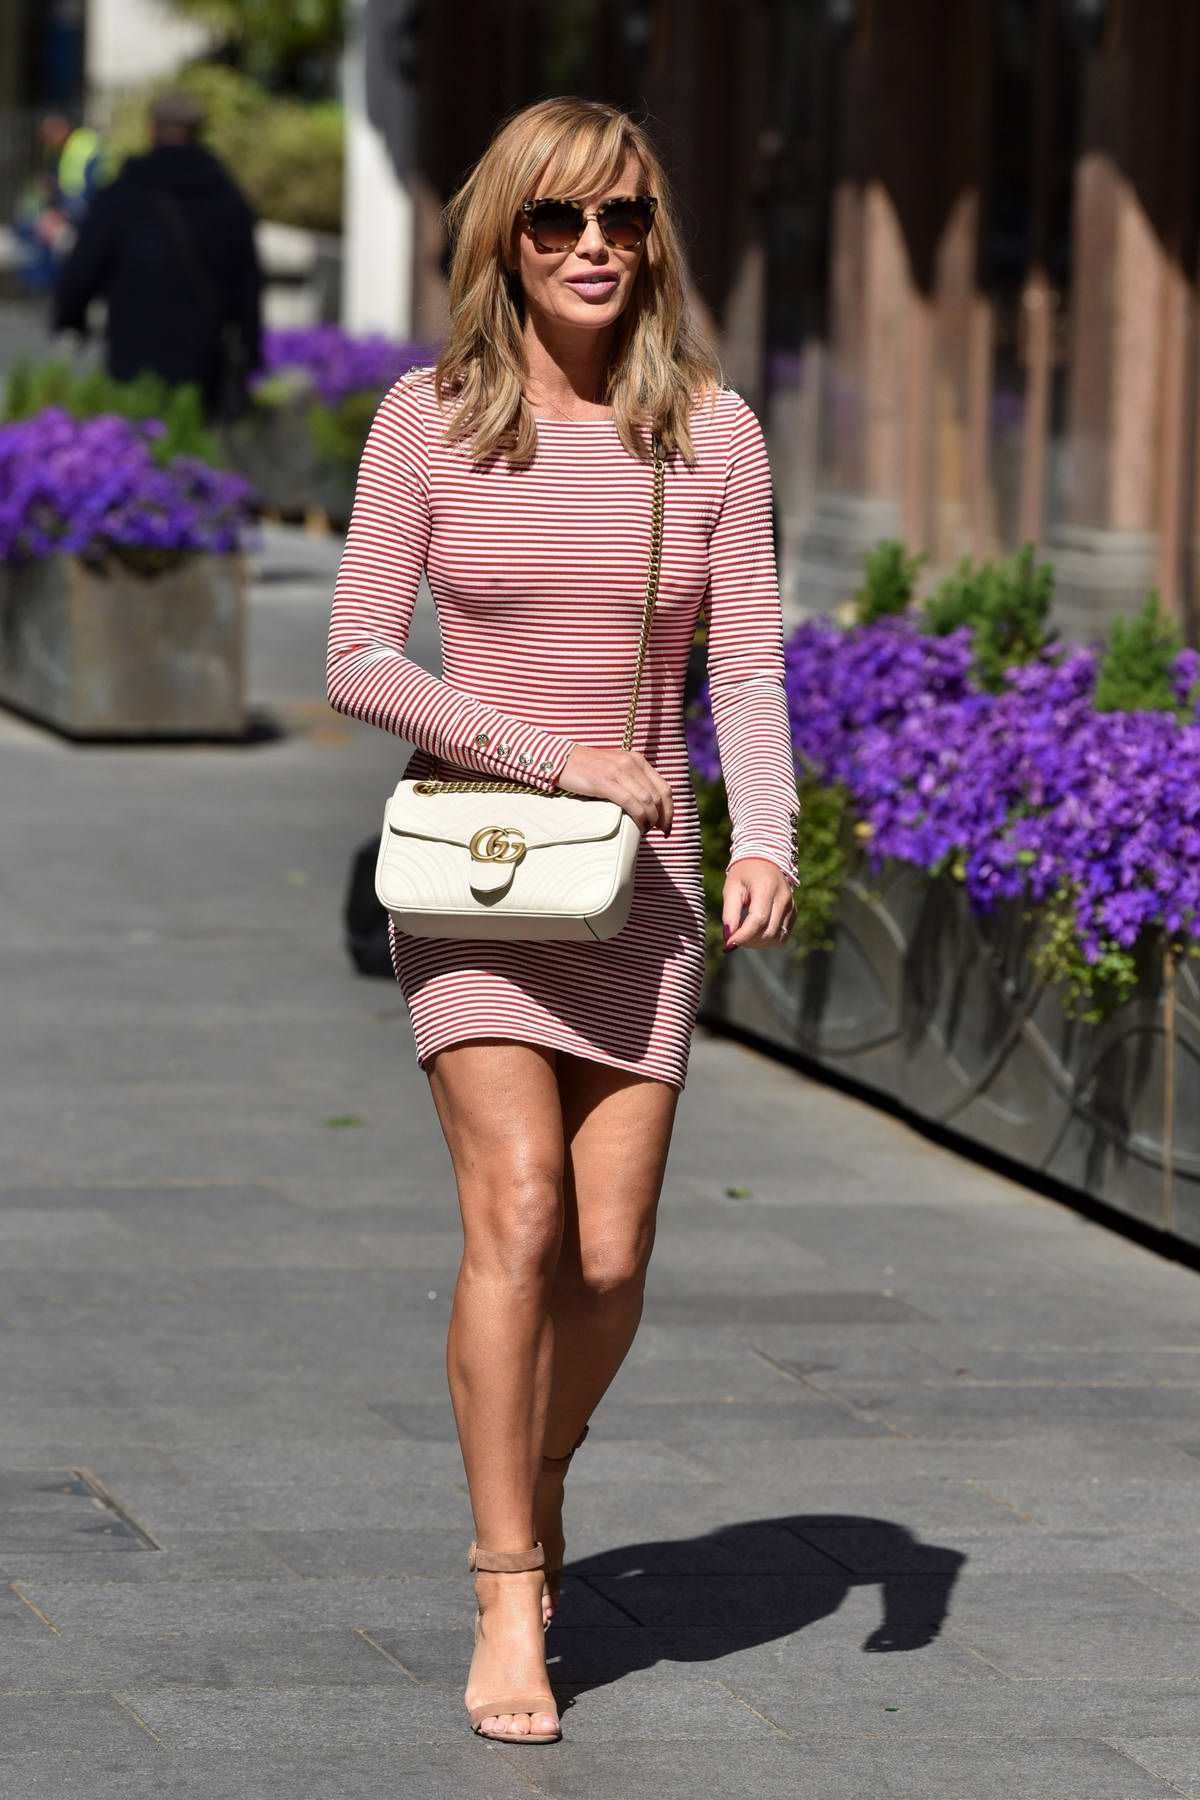 Amanda Holden wears a form-fitting striped mini dress while leaving the Global Radio Studios in London, UK